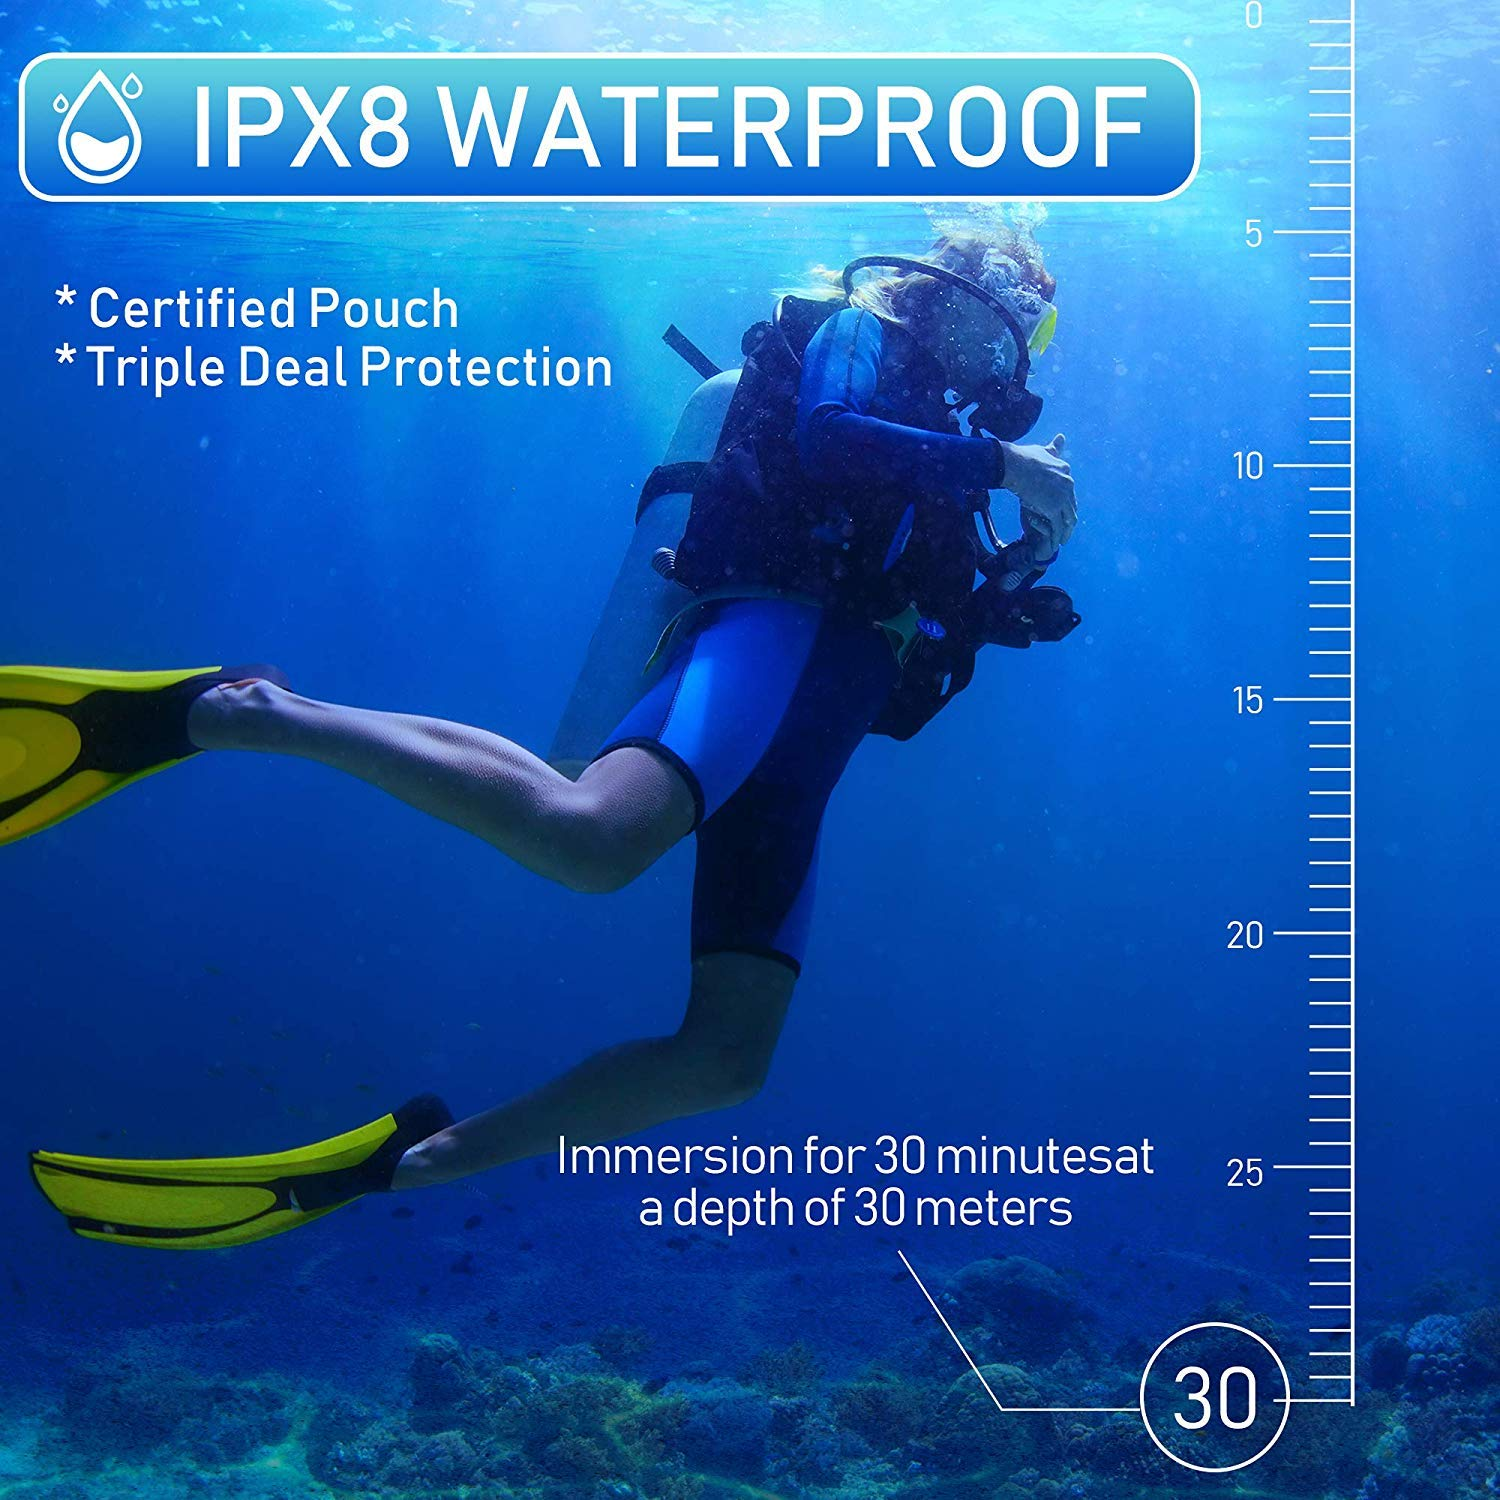 Dry Bag for Cell Phone Pixel 3 2 XL HTC LG Sony Moto Up to 7 3 Pack Universal Waterproof Phone Pouch Summer Water Sports and Dive for iPhone Xs Max XR X 8 7 6S Plus Galaxy S10 Plus S10e S9